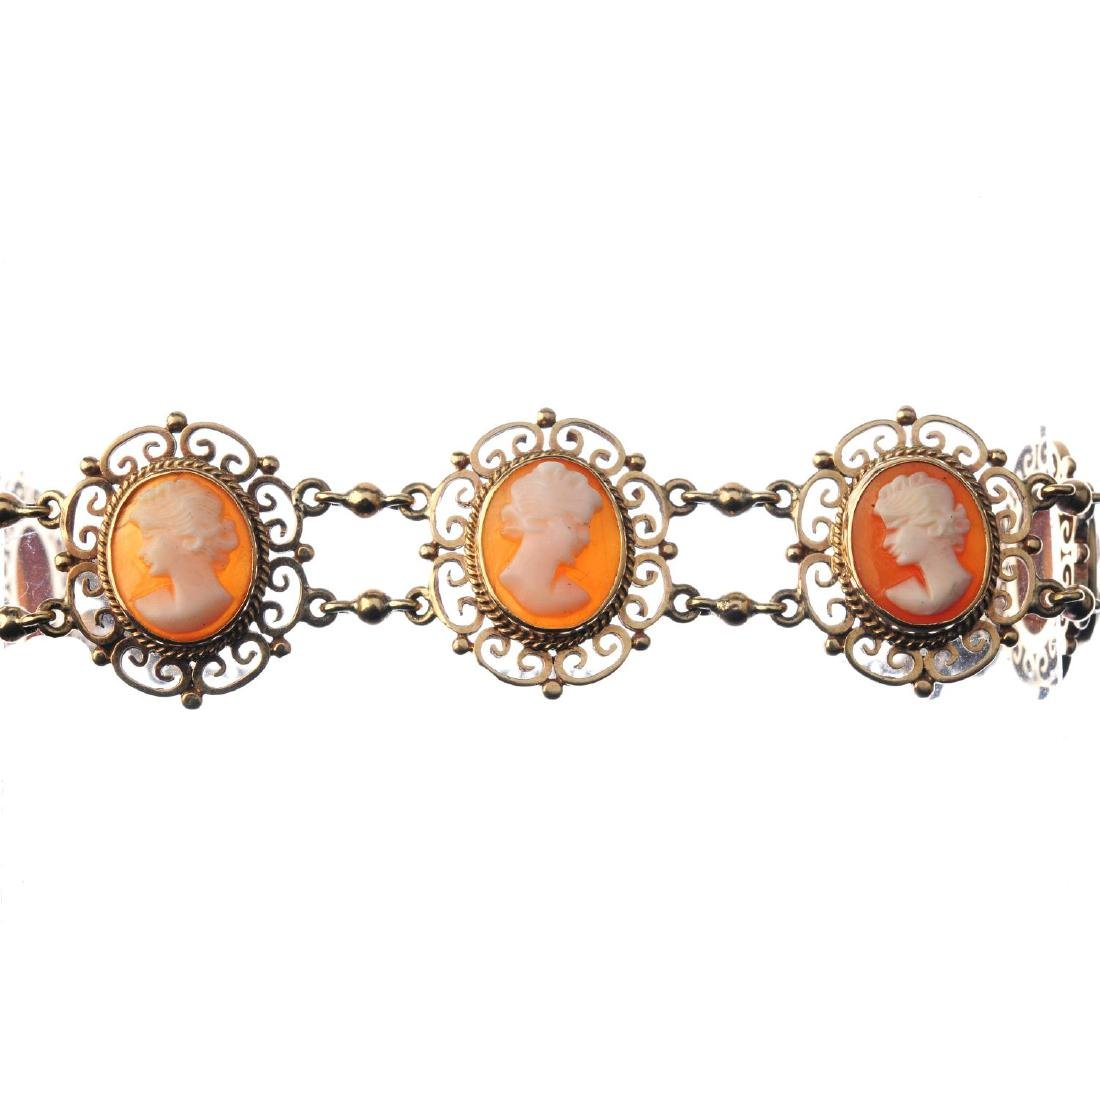 A 9ct gold shell cameo bracelet. Designed as a series